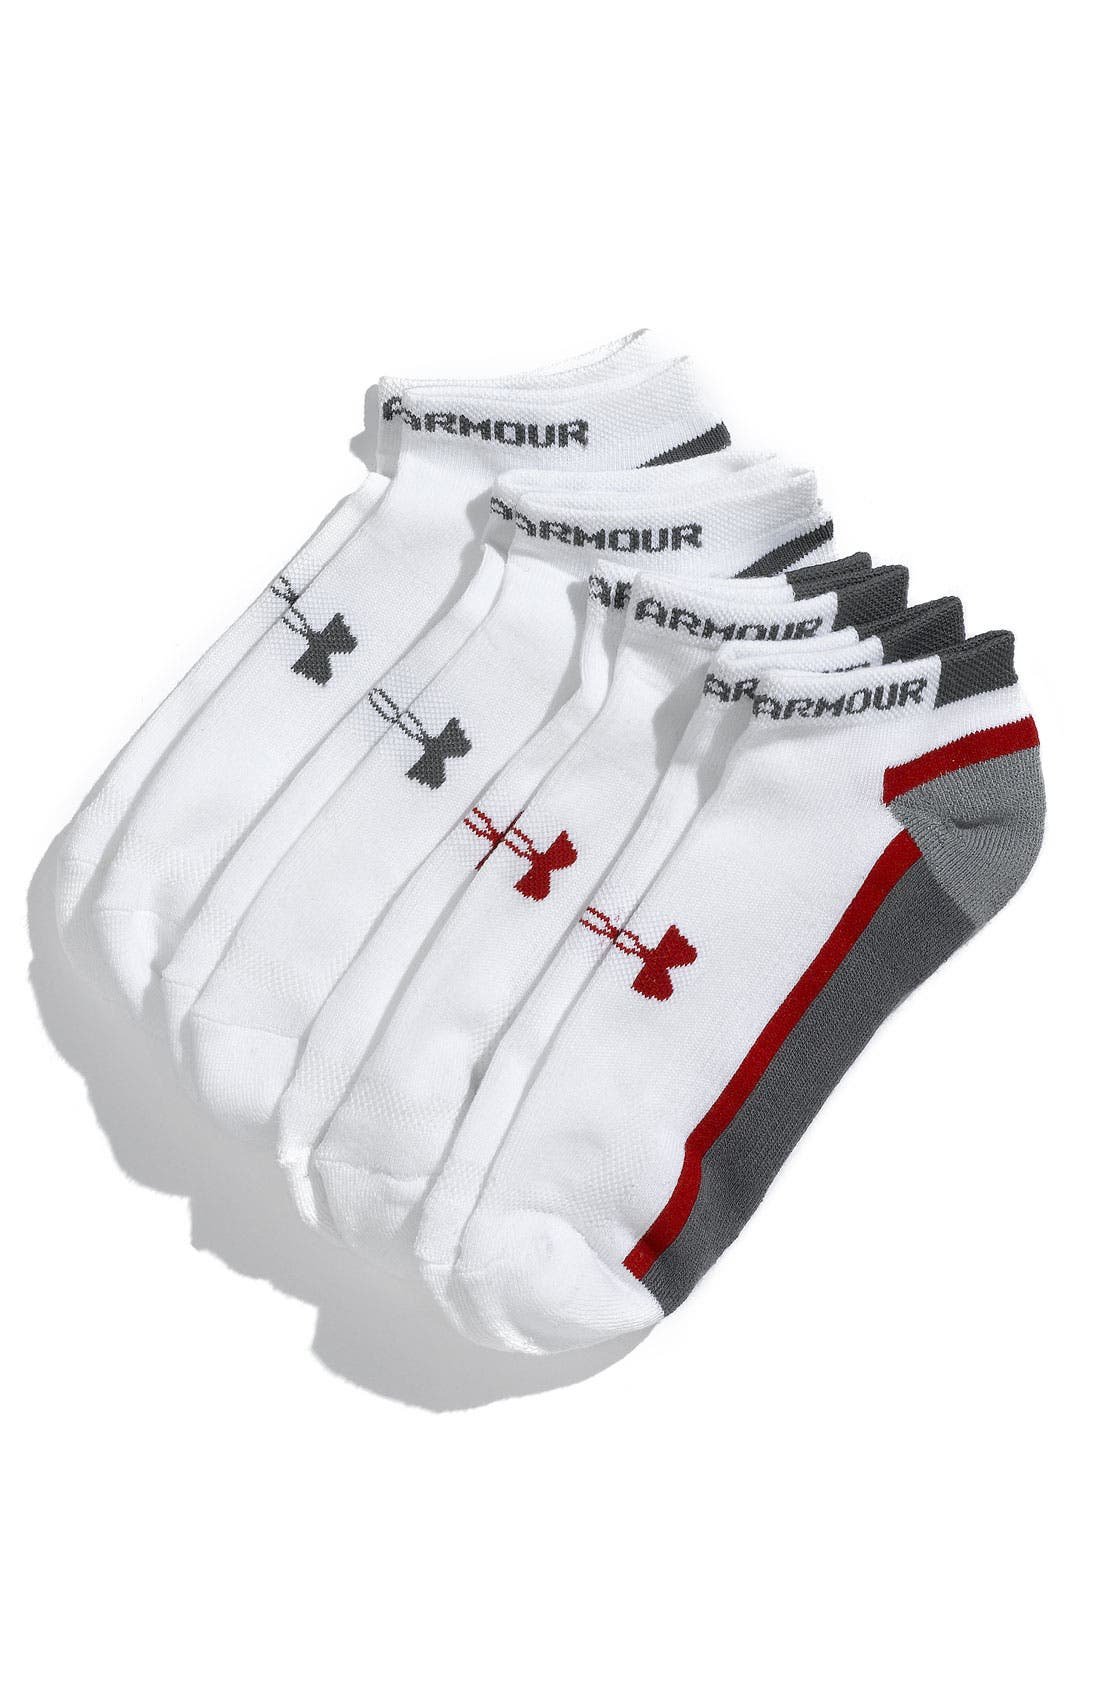 Main Image - Under Armour 'Beyond Now' Socks